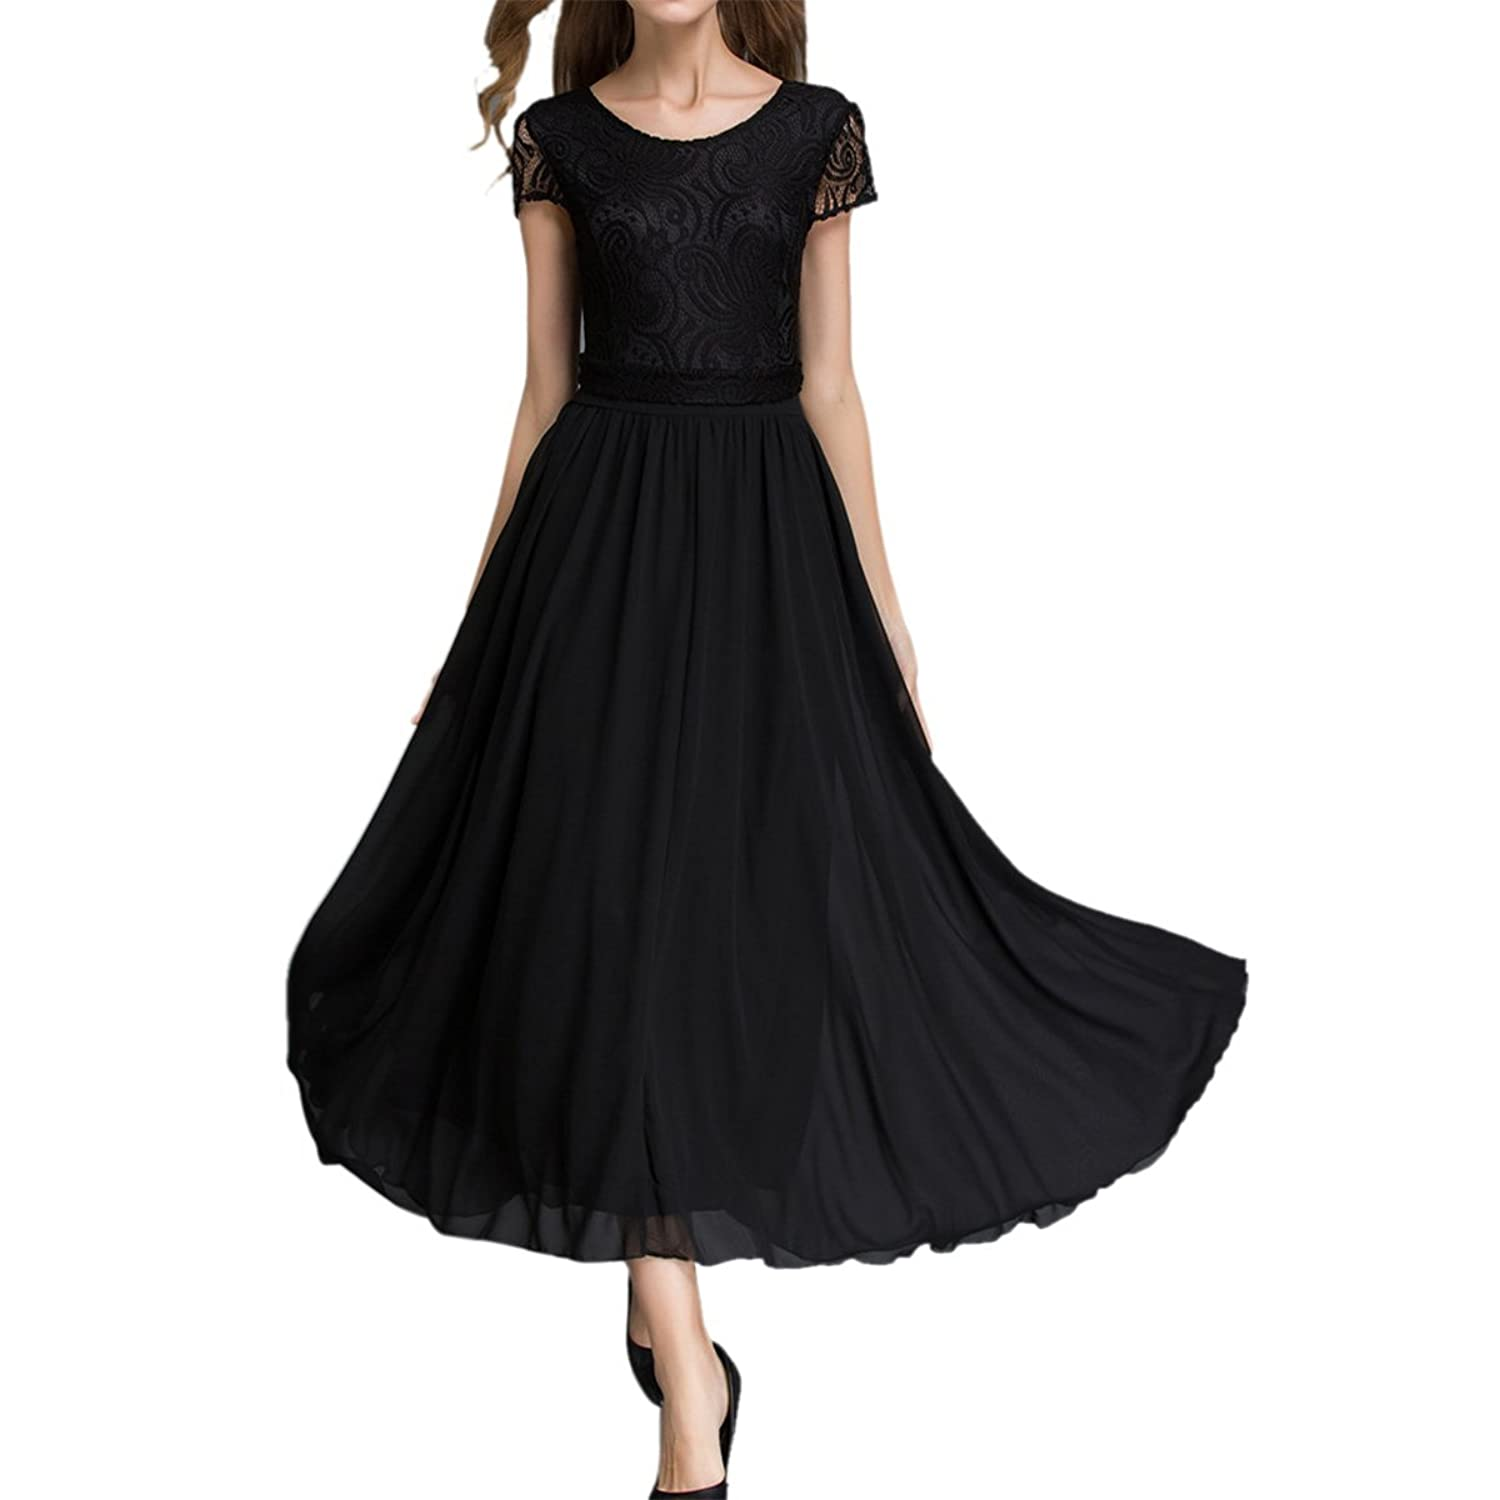 Sue&Joe Womens Bridesmaid Dress Lace Top Short Sleeve Ankle Length Chiffon Dress at Amazon Womens Clothing store: